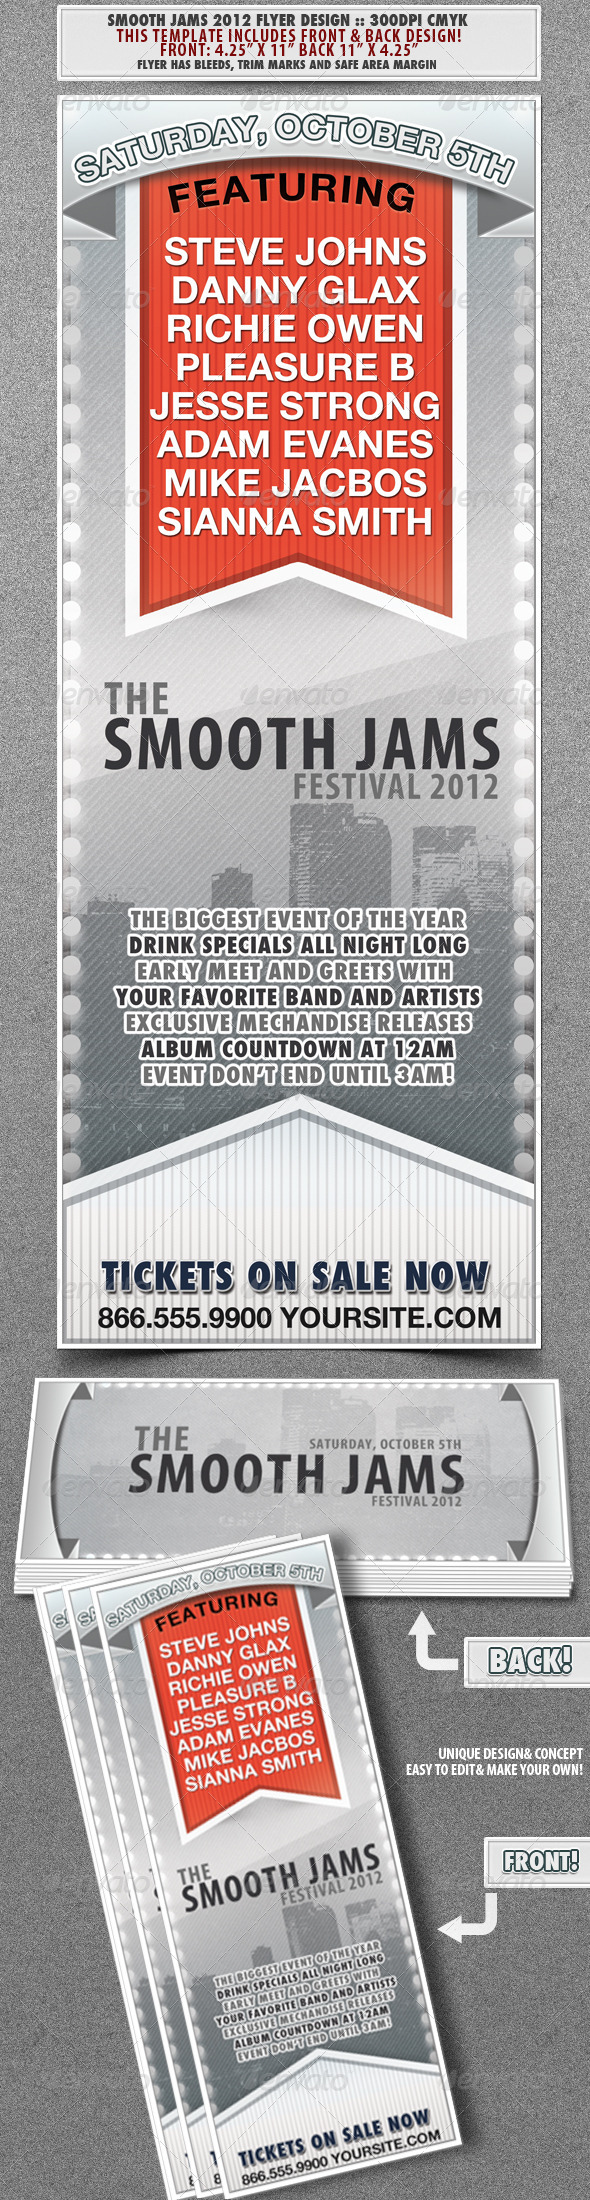 Smooth Jams 2012 Event Flyer - Concerts Events